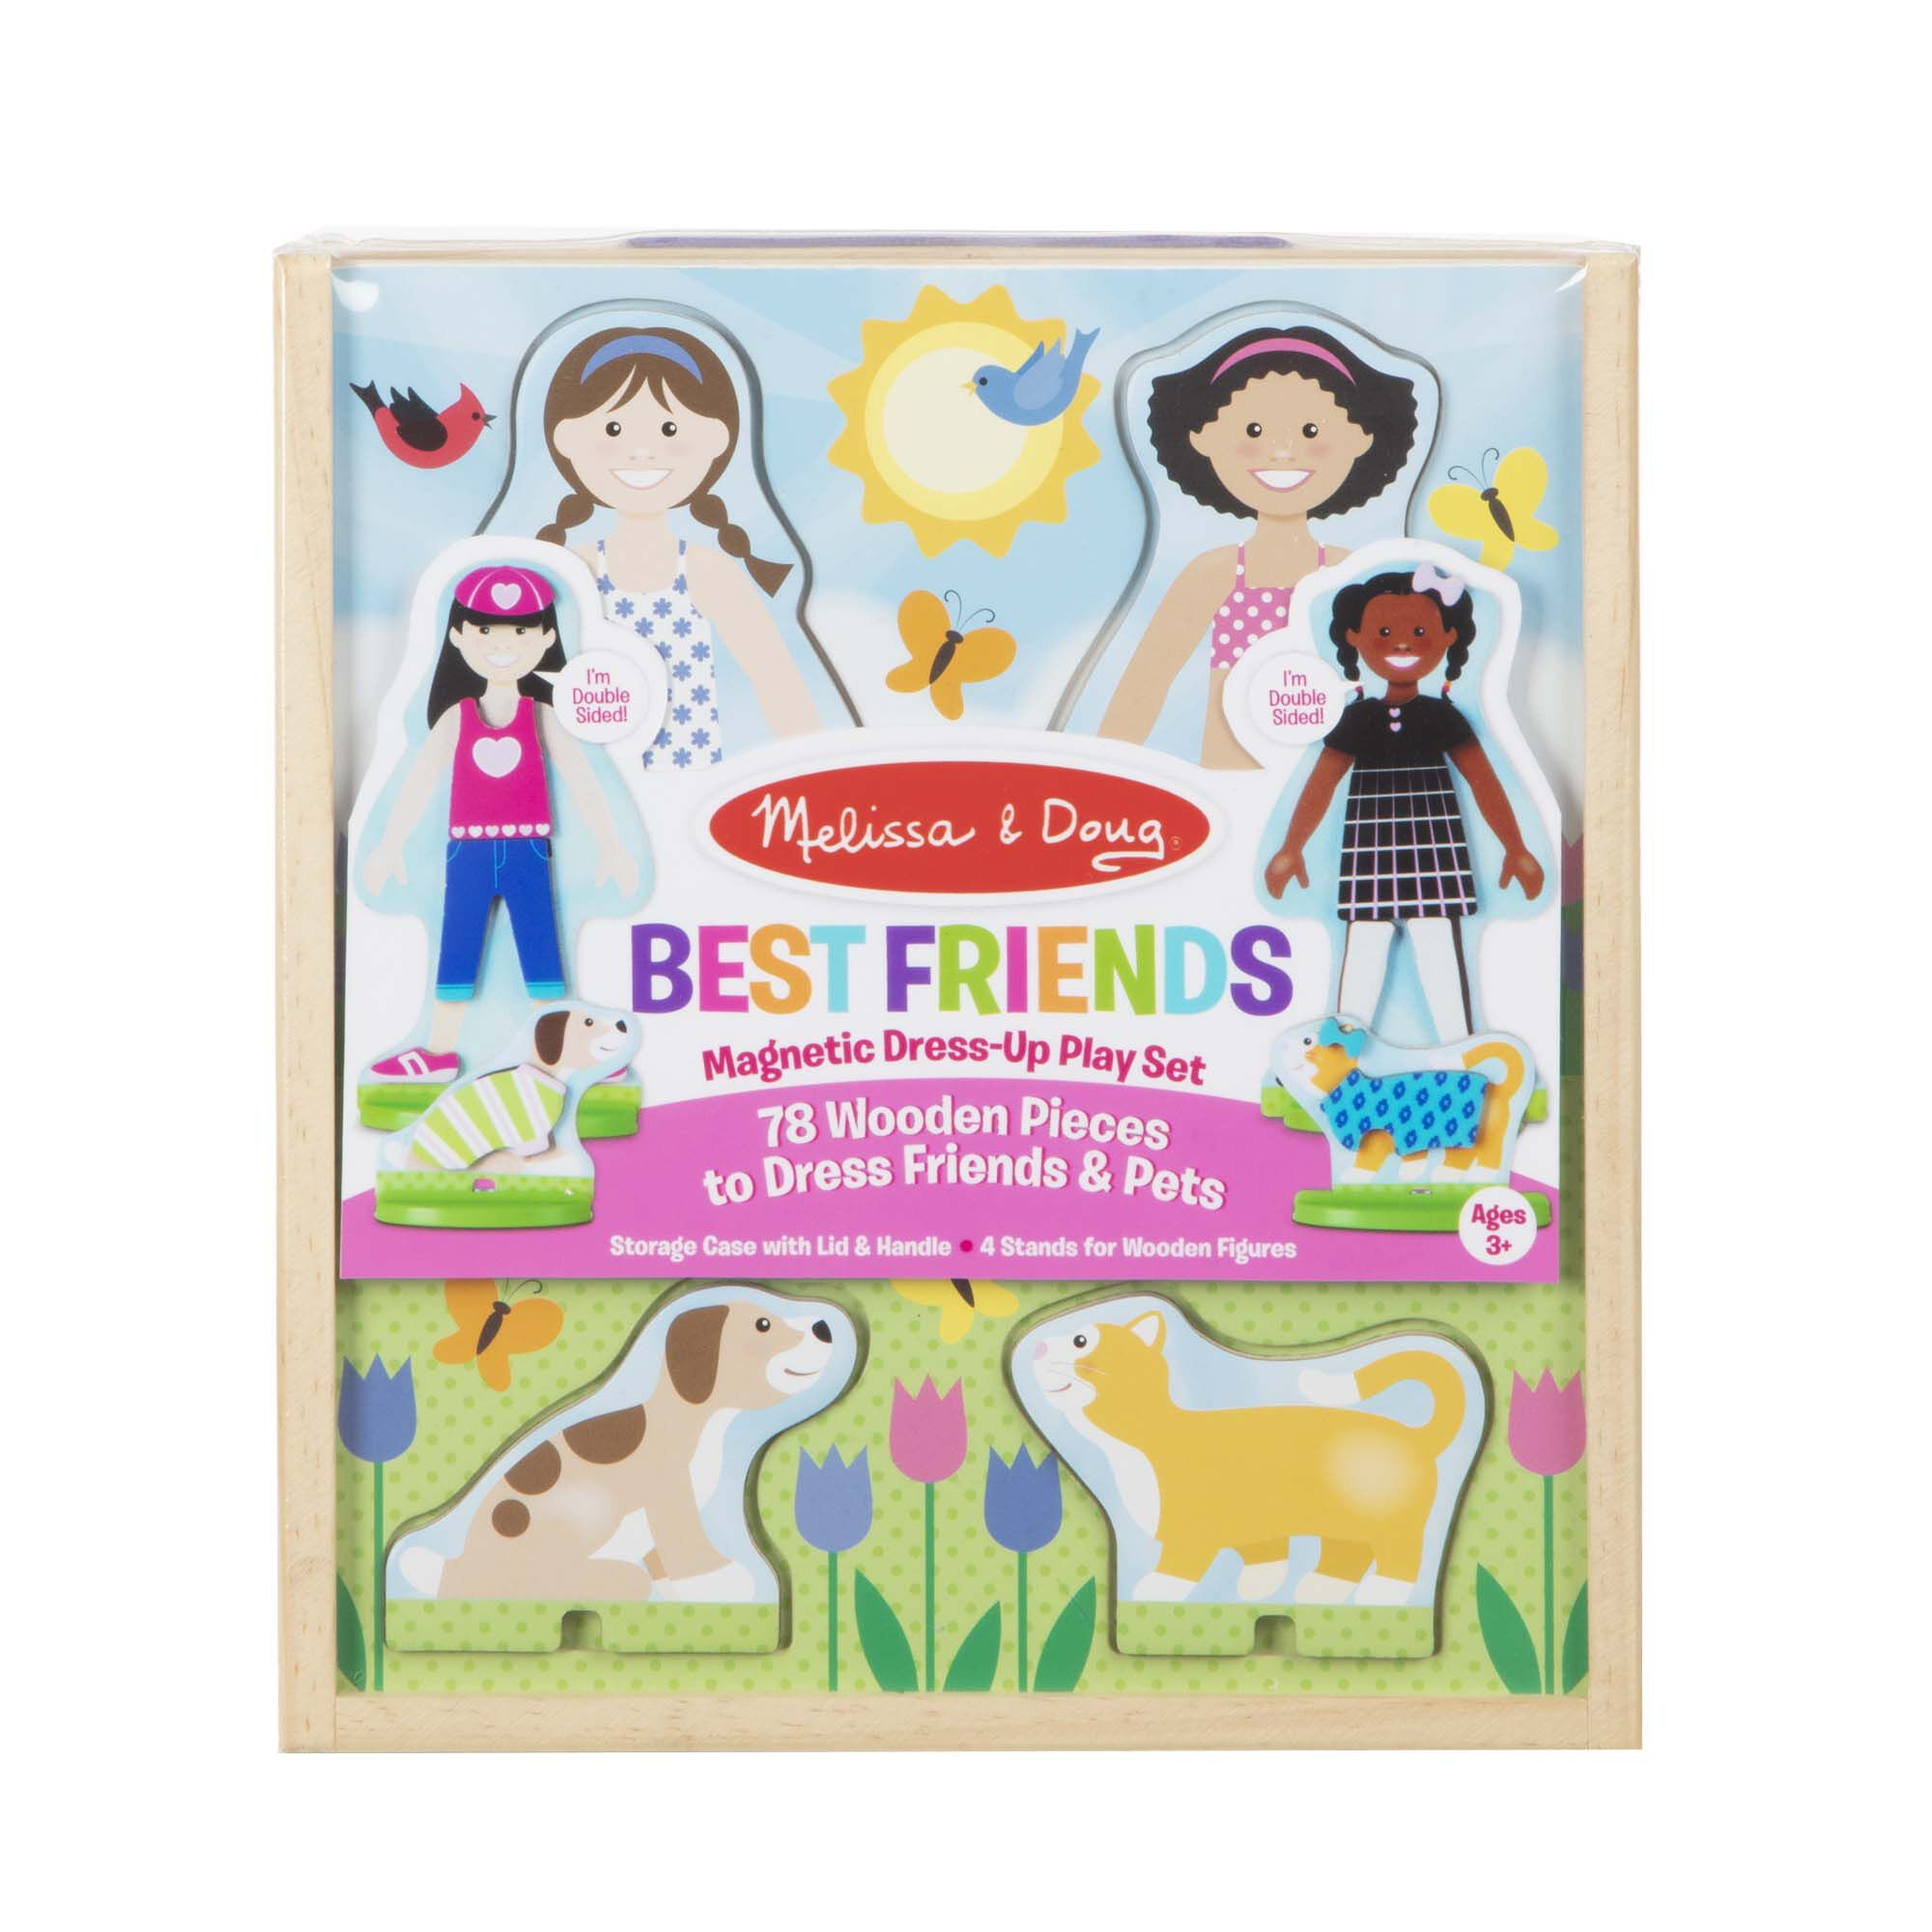 3 Dolls With Clothing And Accessories 100% High Quality Materials Dolls & Bears Active 4-ever Best Friends Dolls